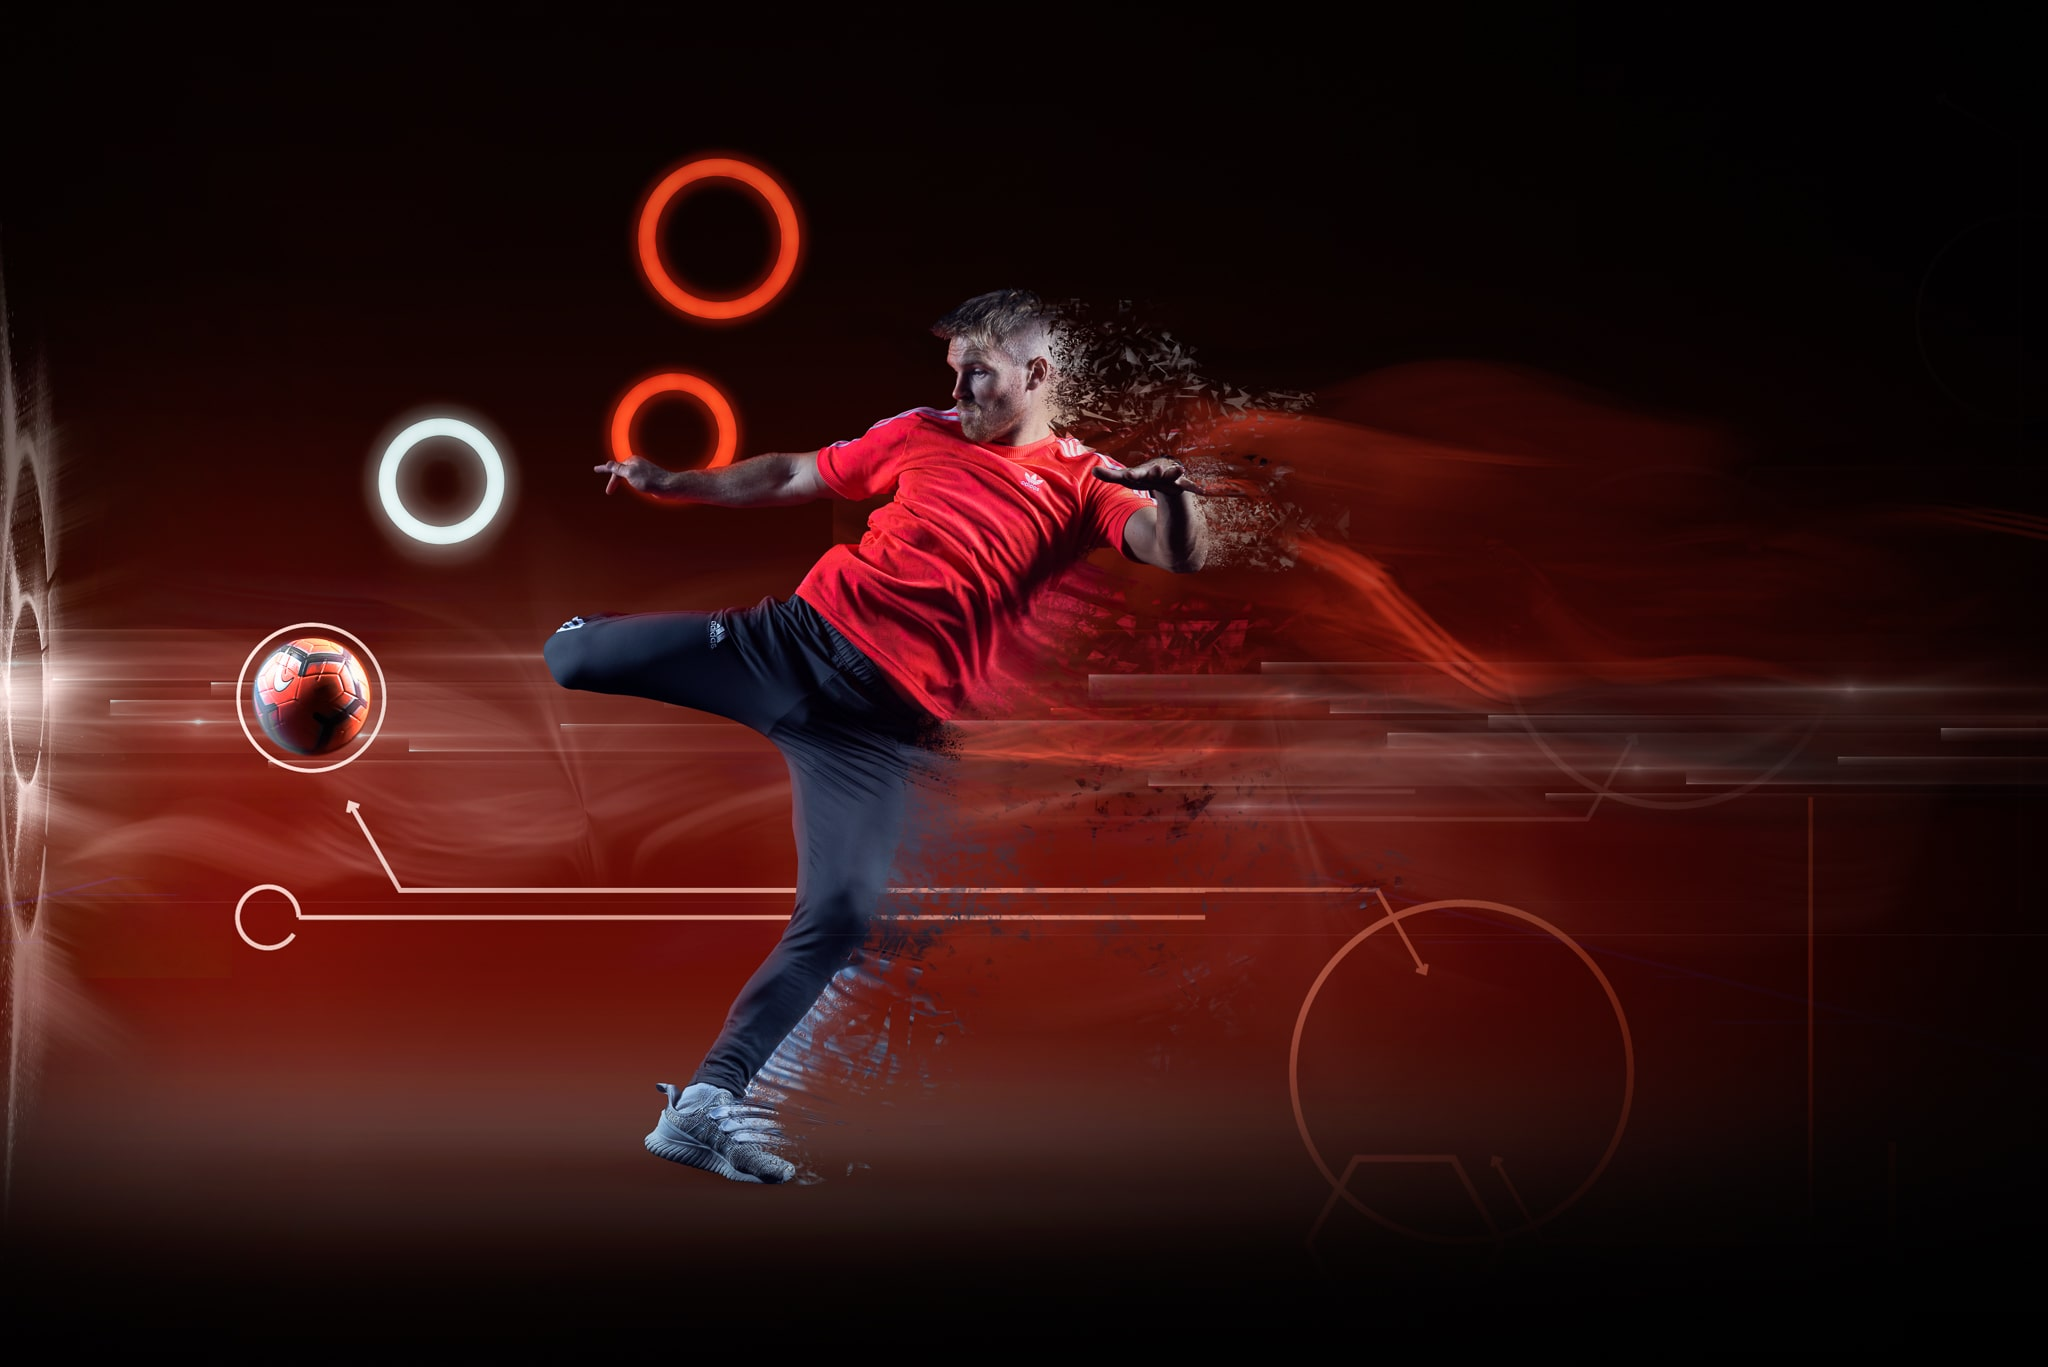 Footballer kicking football on Red Background